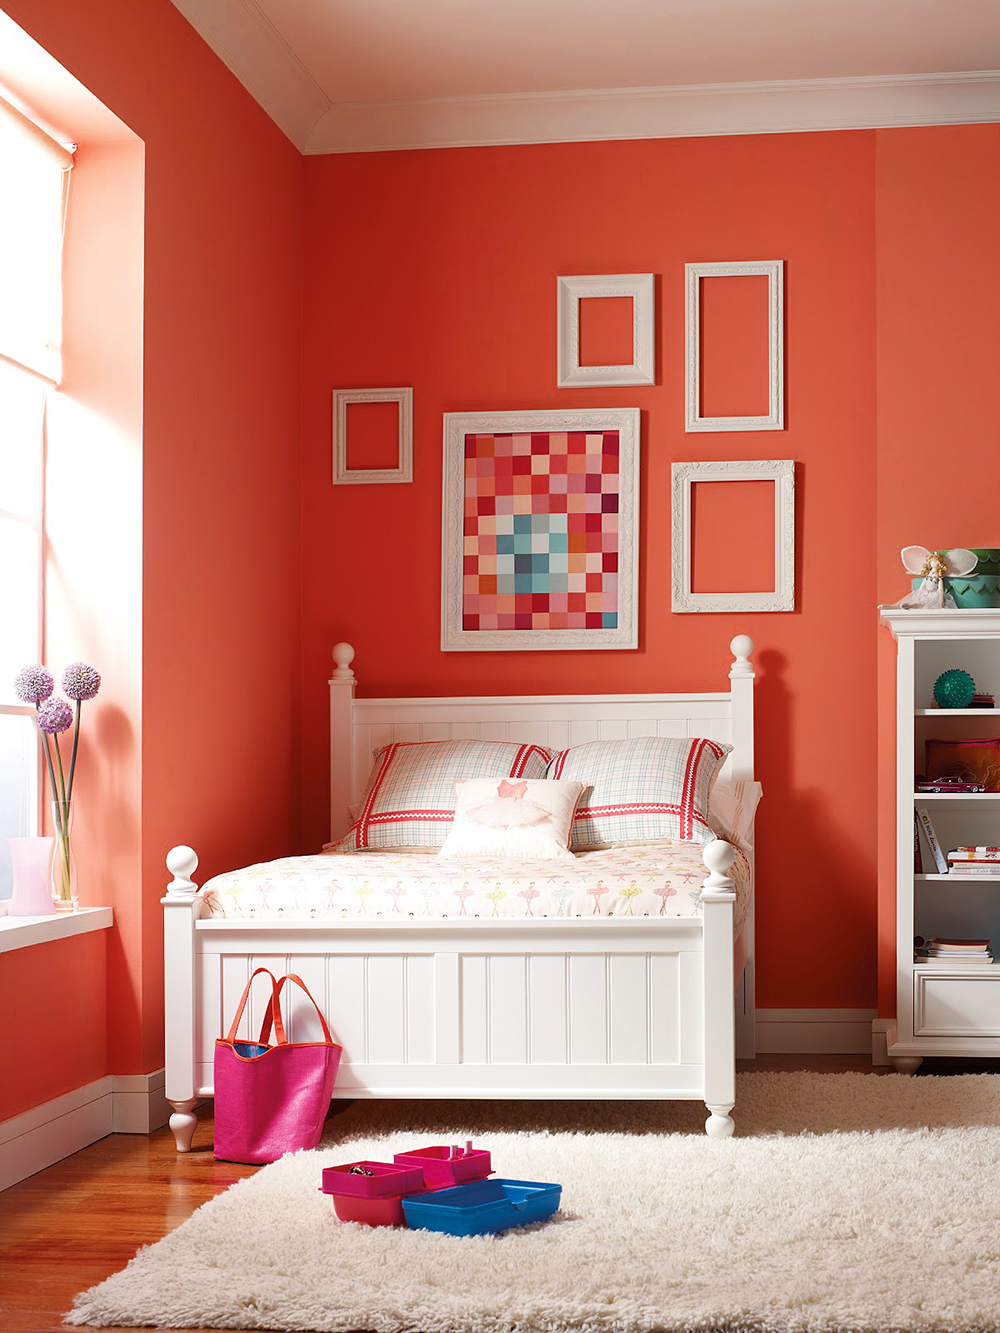 orange-wall-with-white-bed-and-white-floor-also-glass-windows-ideas-five-colours-room-painting-design-for-ladies_OK.jpg